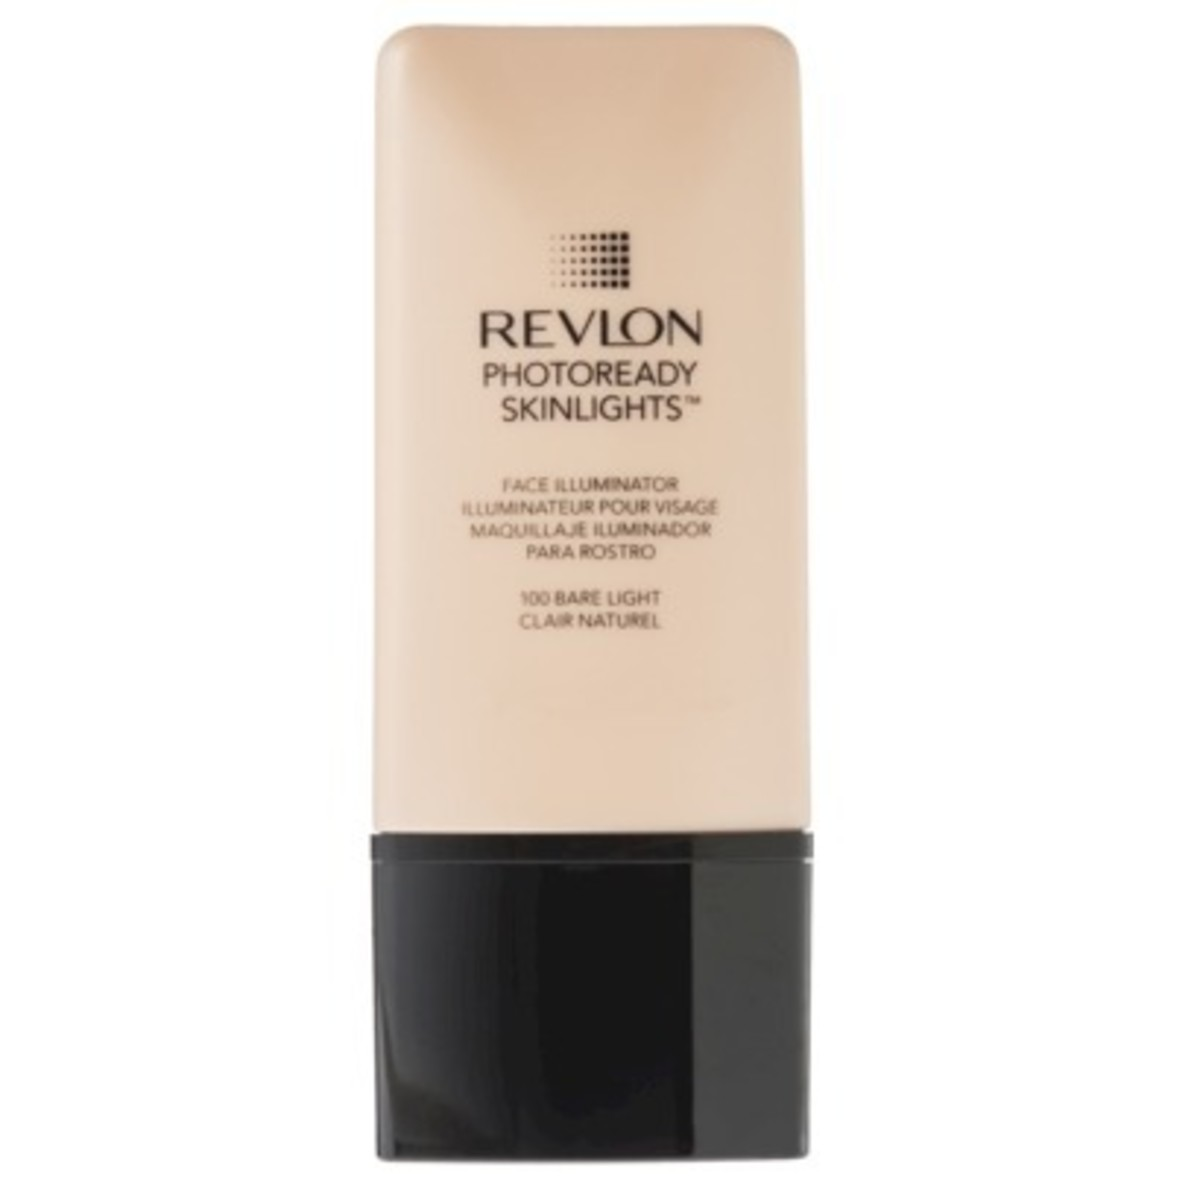 PhotoReady Skin Lights Face Illuminator